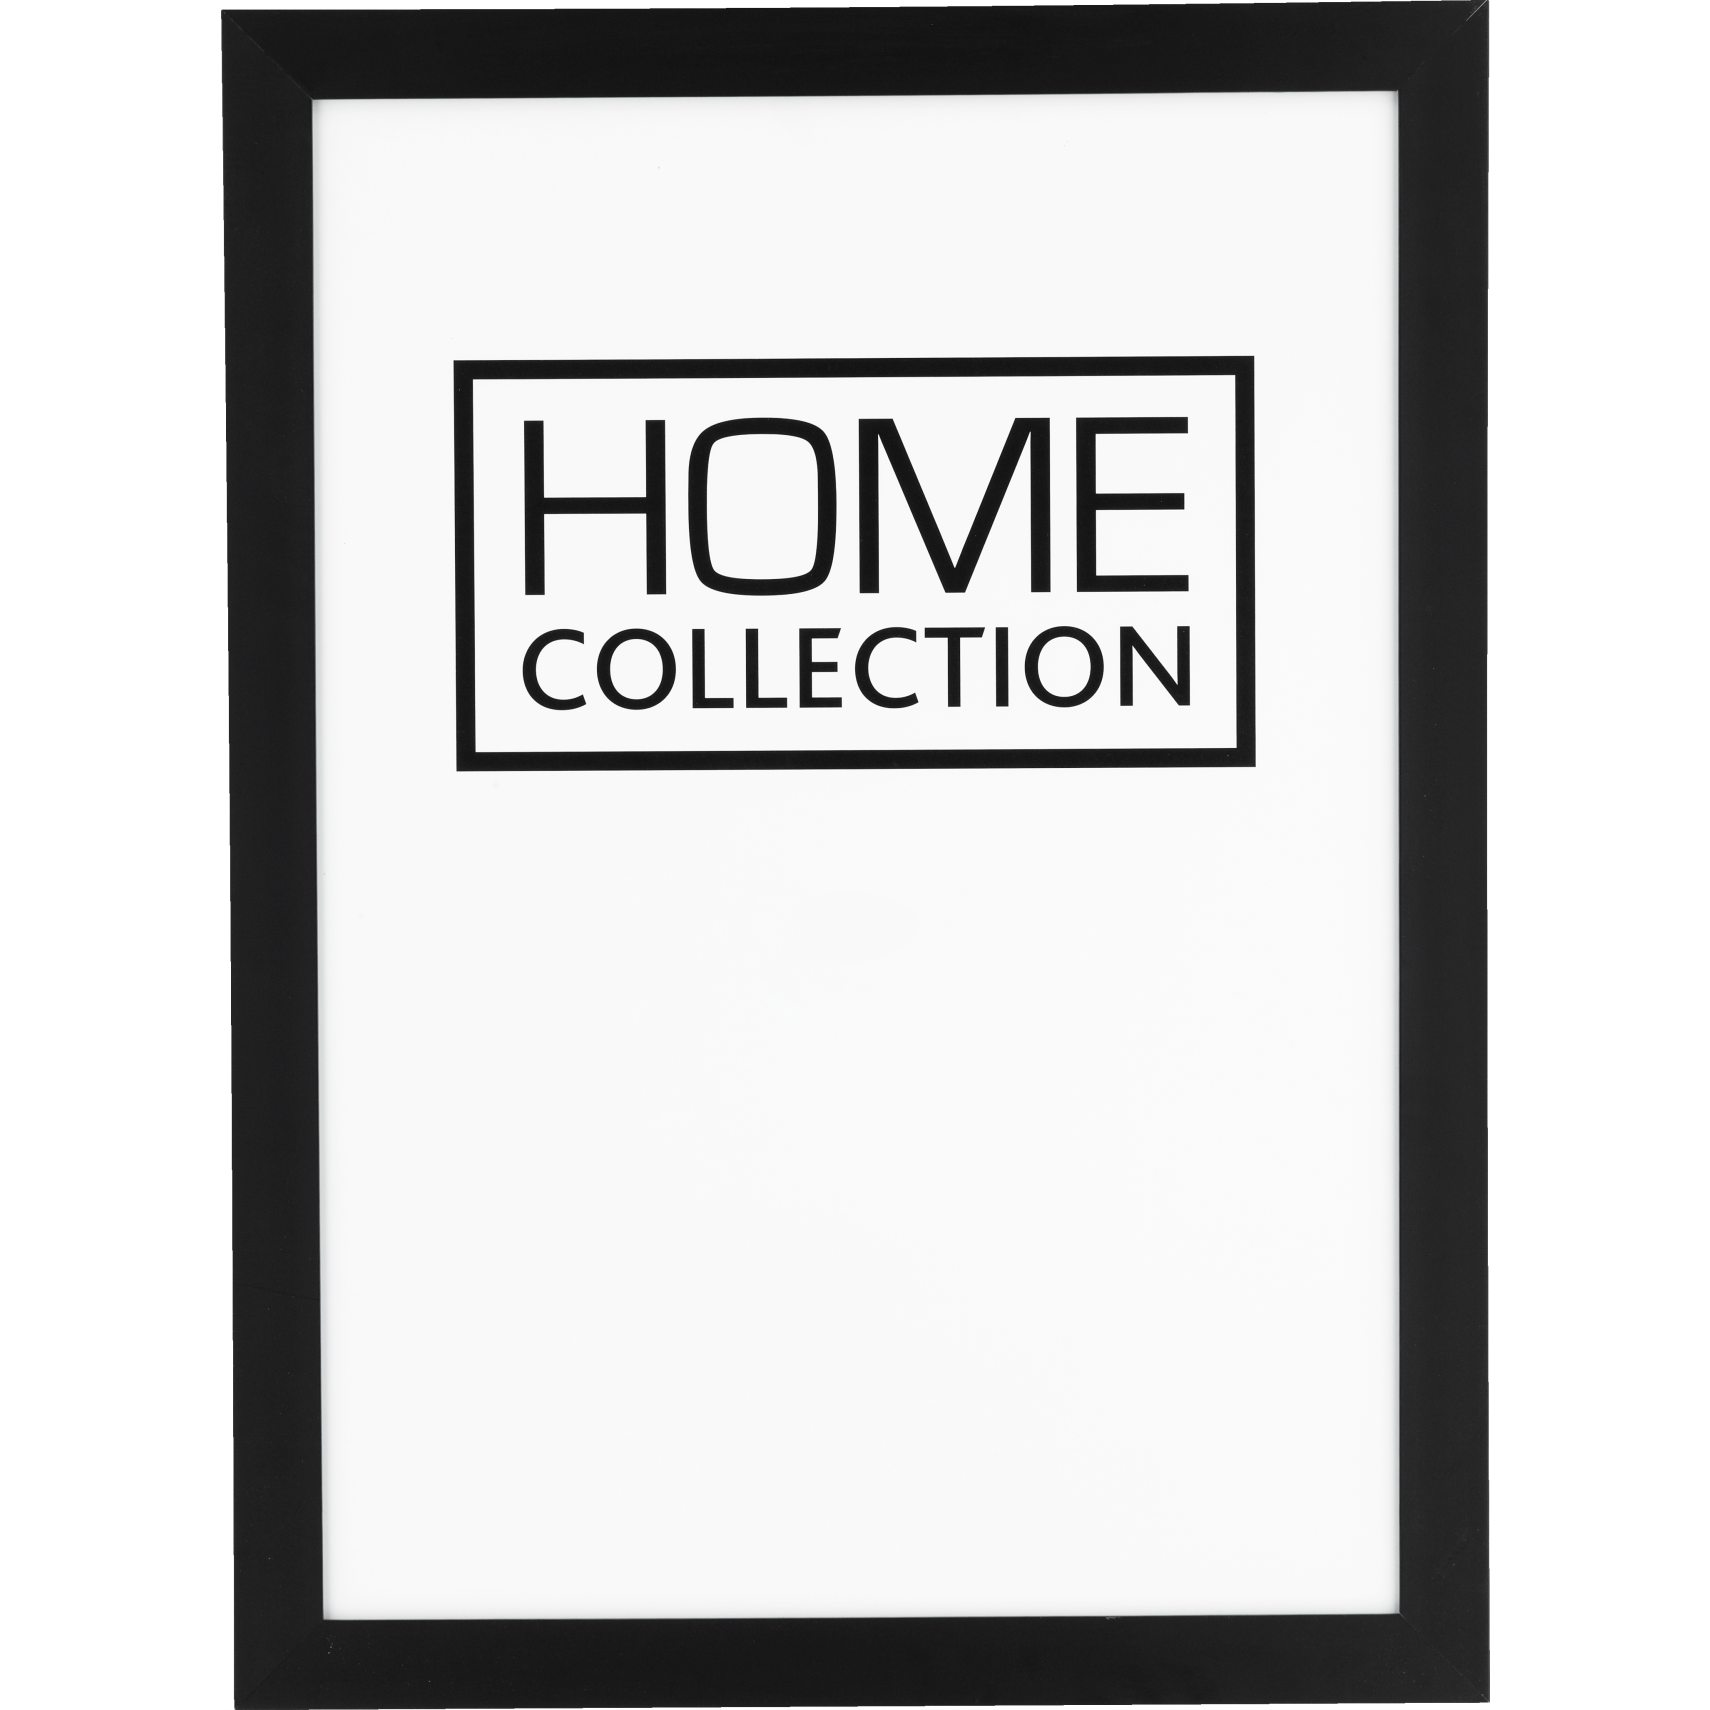 HOME COLLECTION Ram 50 x 70 x 2 cm - Svart träram